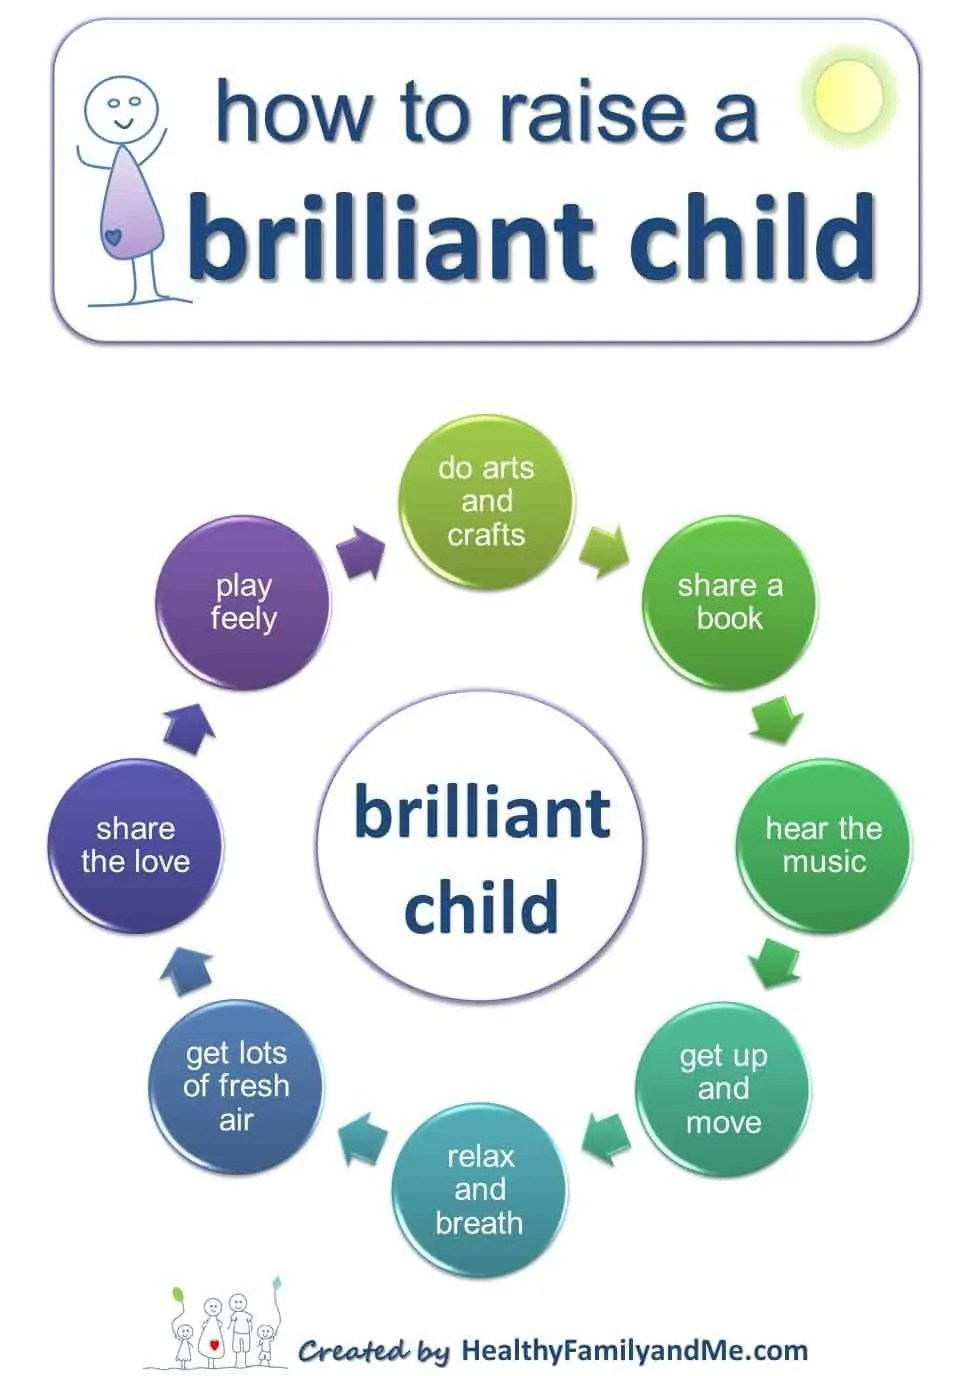 How To Raise Brilliant Children >> How You Can Raise A Brilliant Child Using 8 Powerful Actions